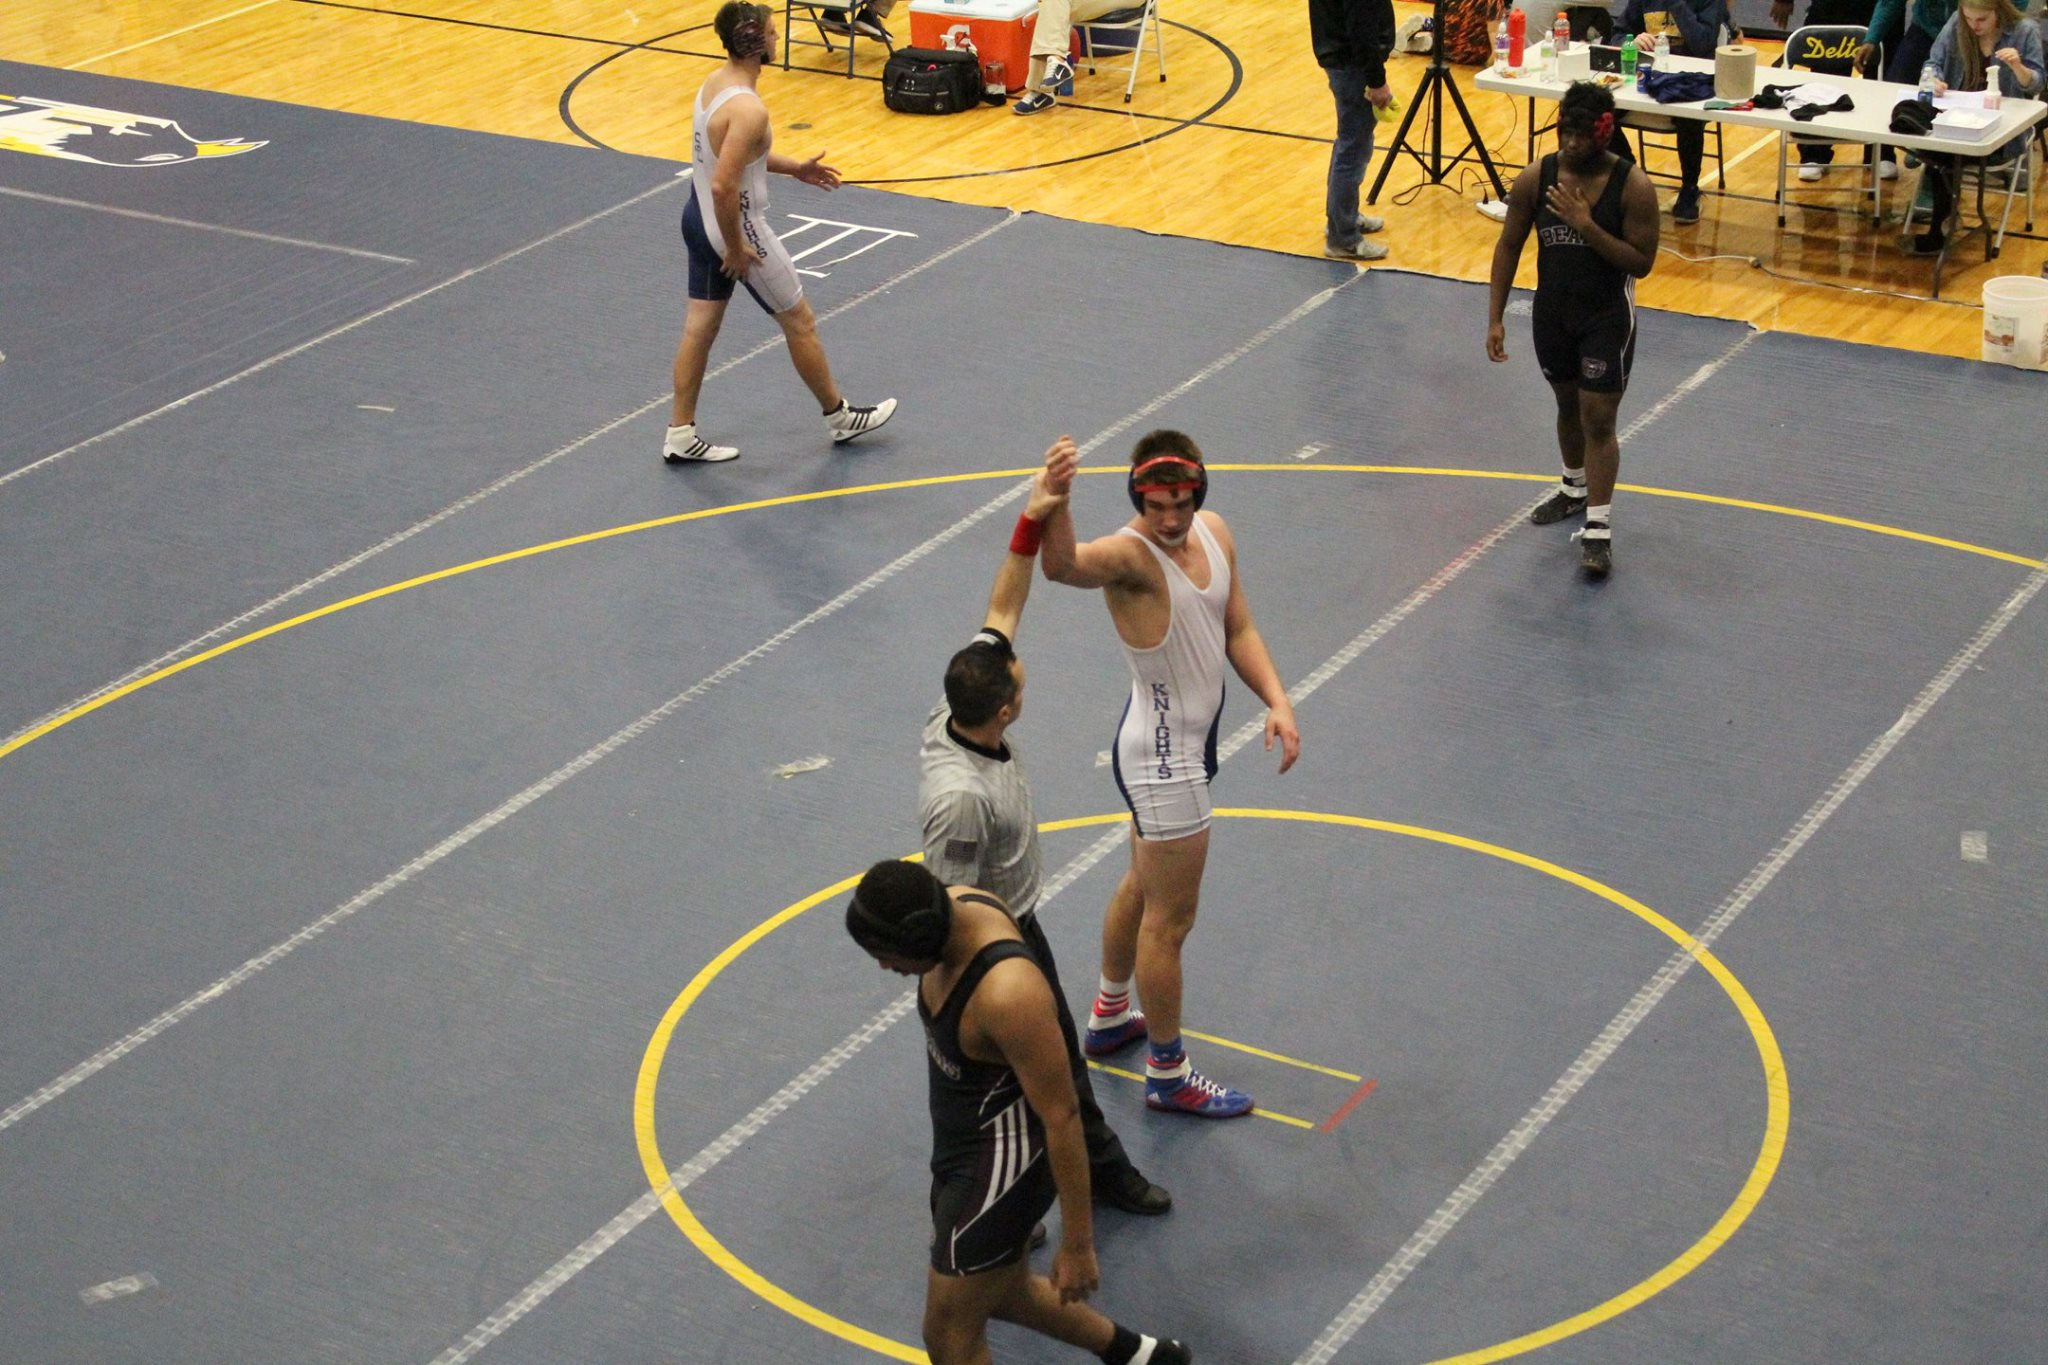 South Dearborn Wrestlers traveled to the Delta Duals in Muncie on December 9th